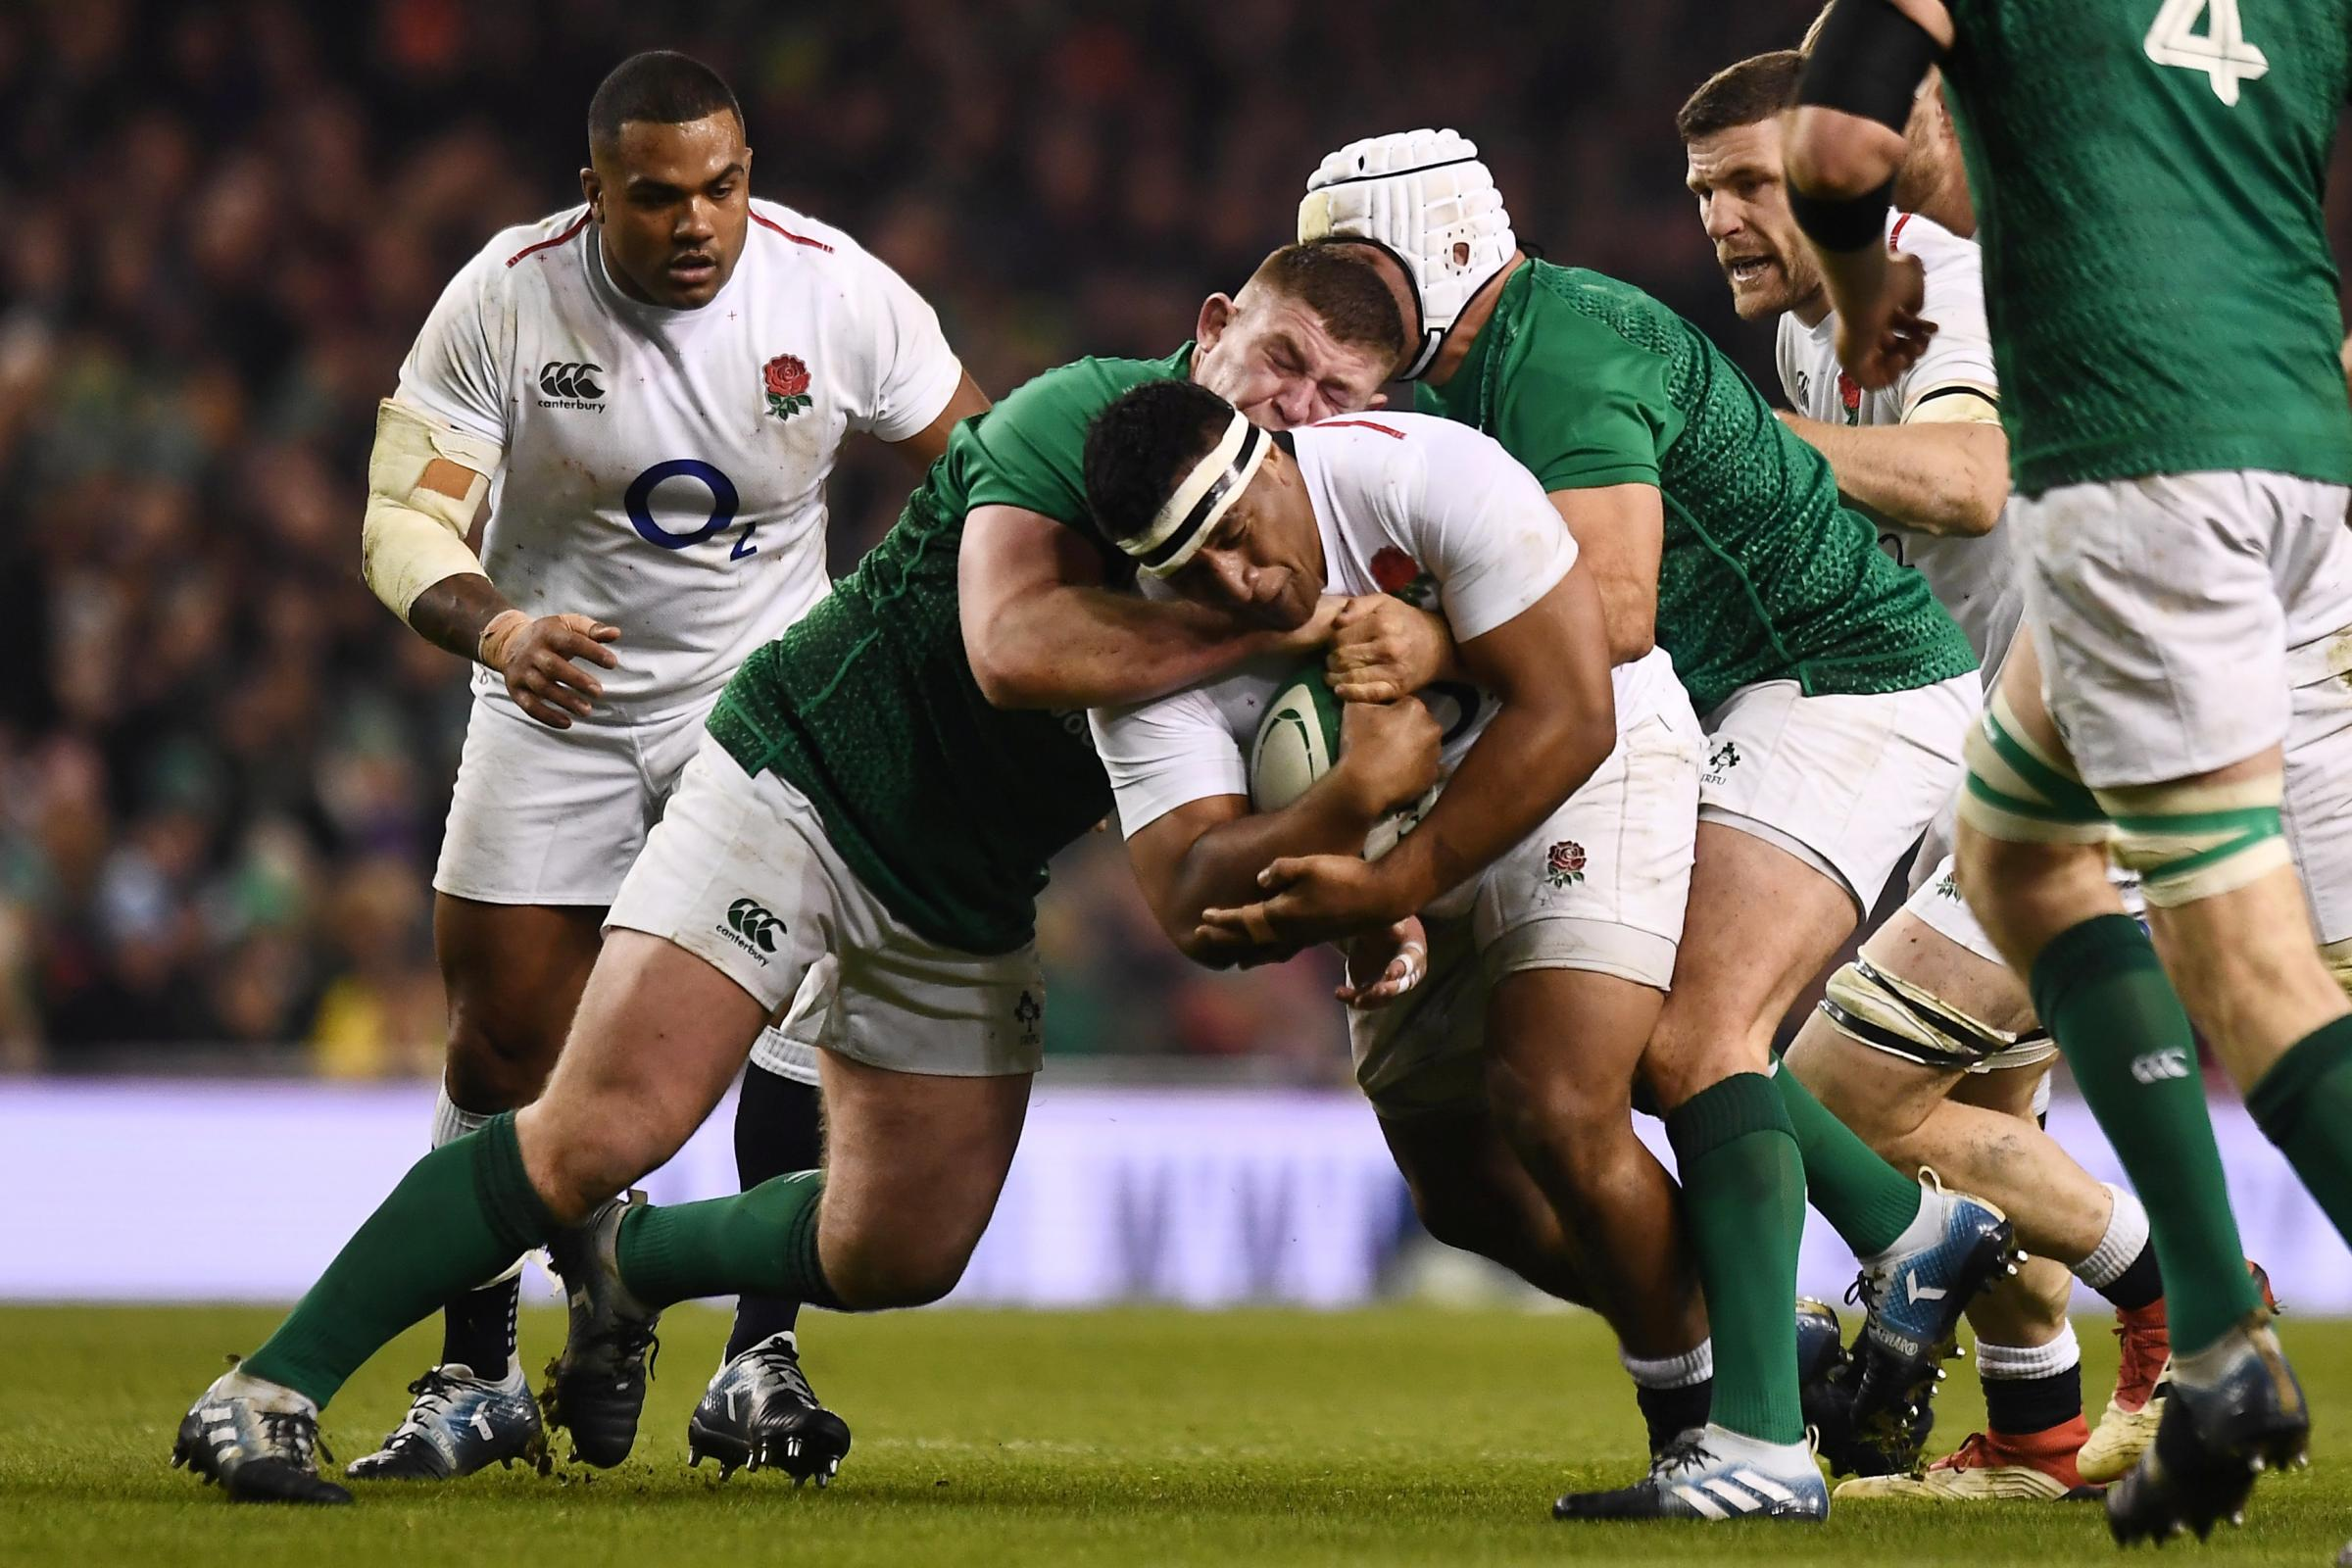 Mako Vunipola was named man of the match against Ireland. Picture: Action Images